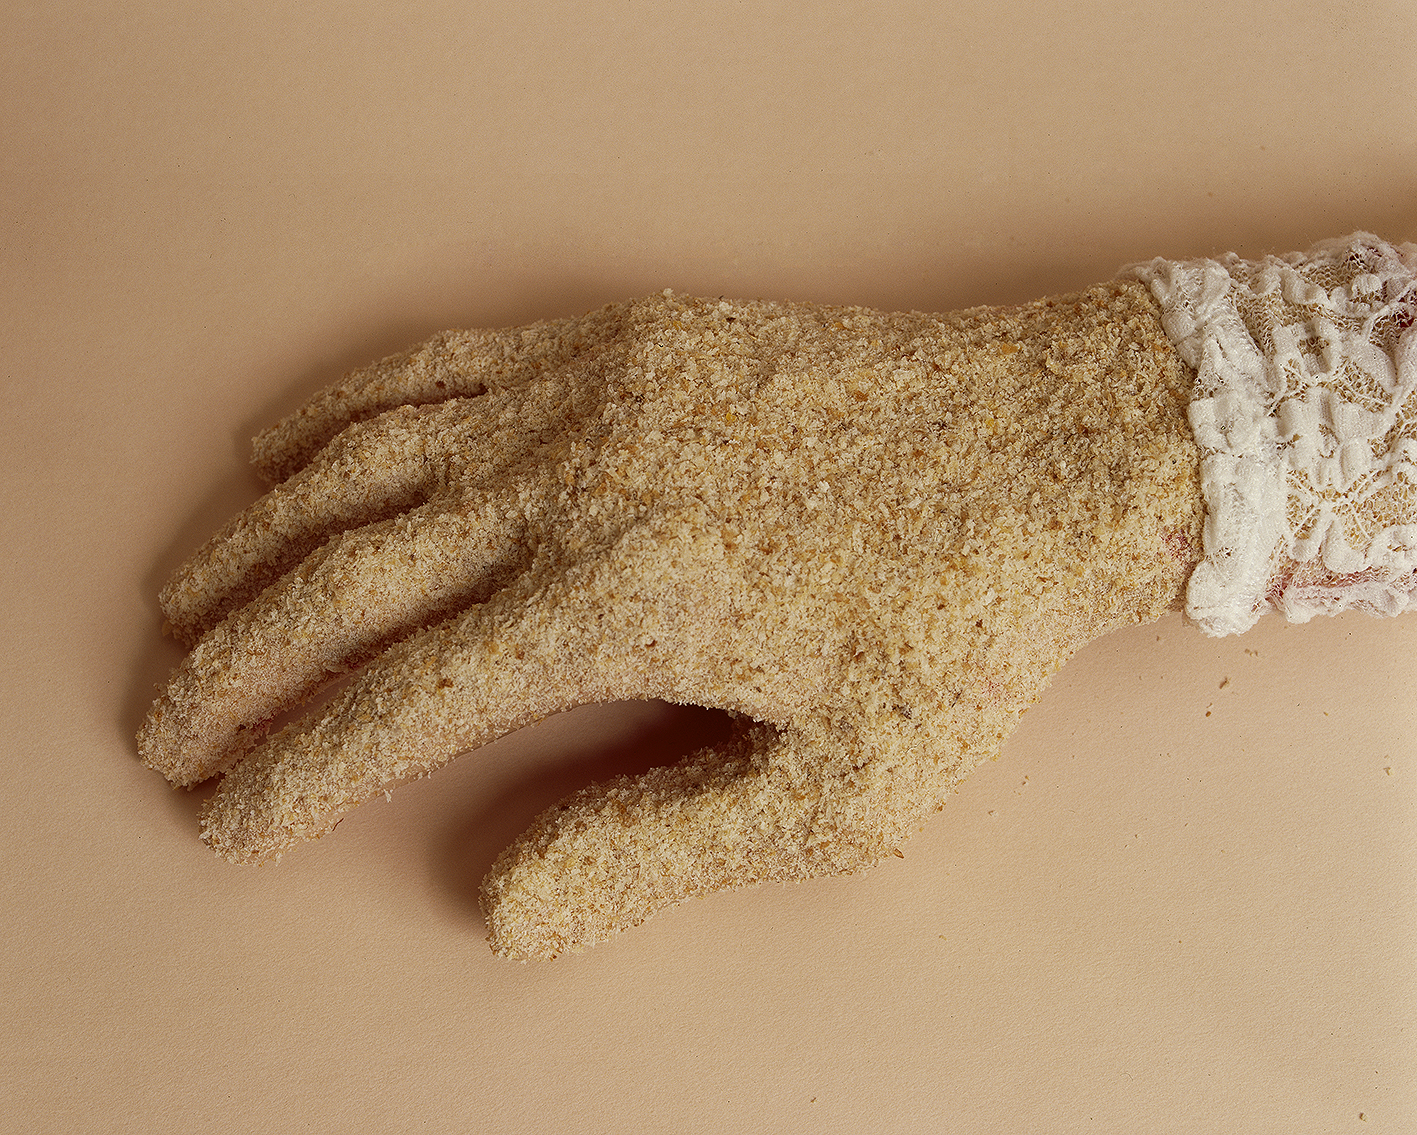 Crumbed Hand, 1998